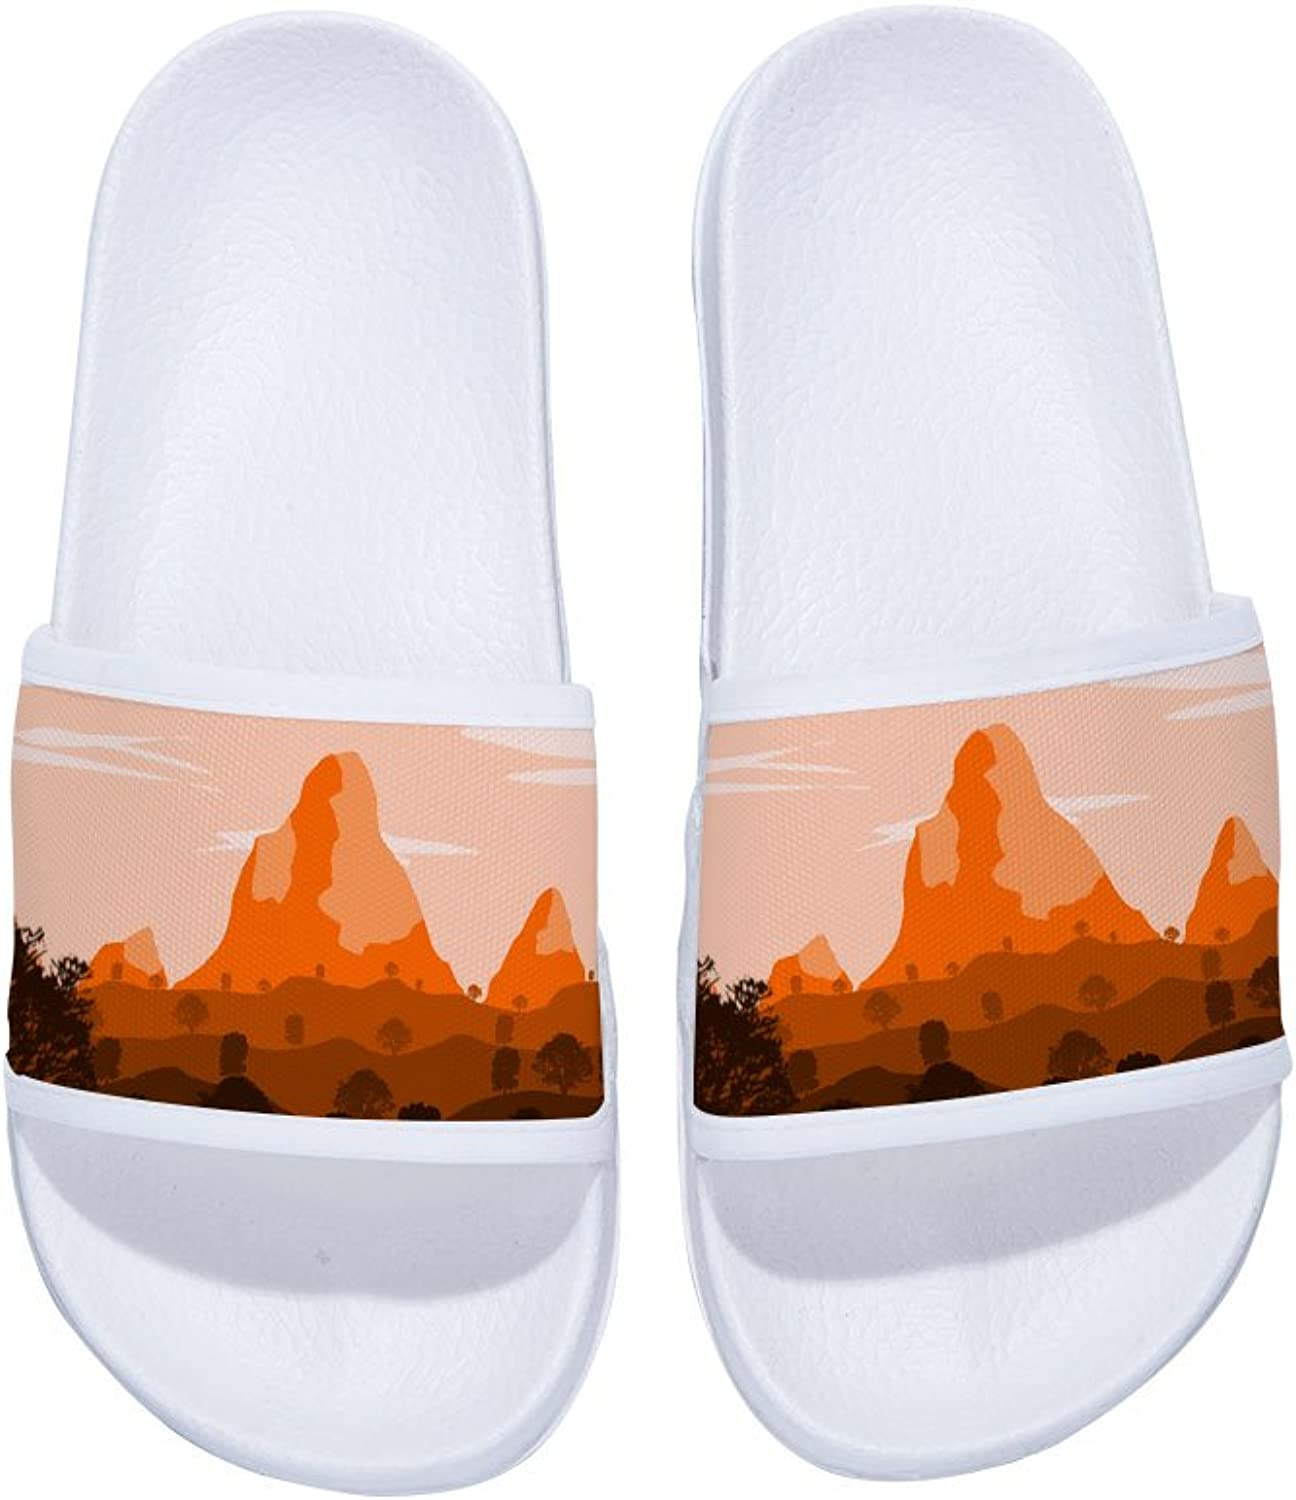 orange Mountain Fashion Pattern Slippers Non-Slip Quick-Drying Slippers for Womens Mens